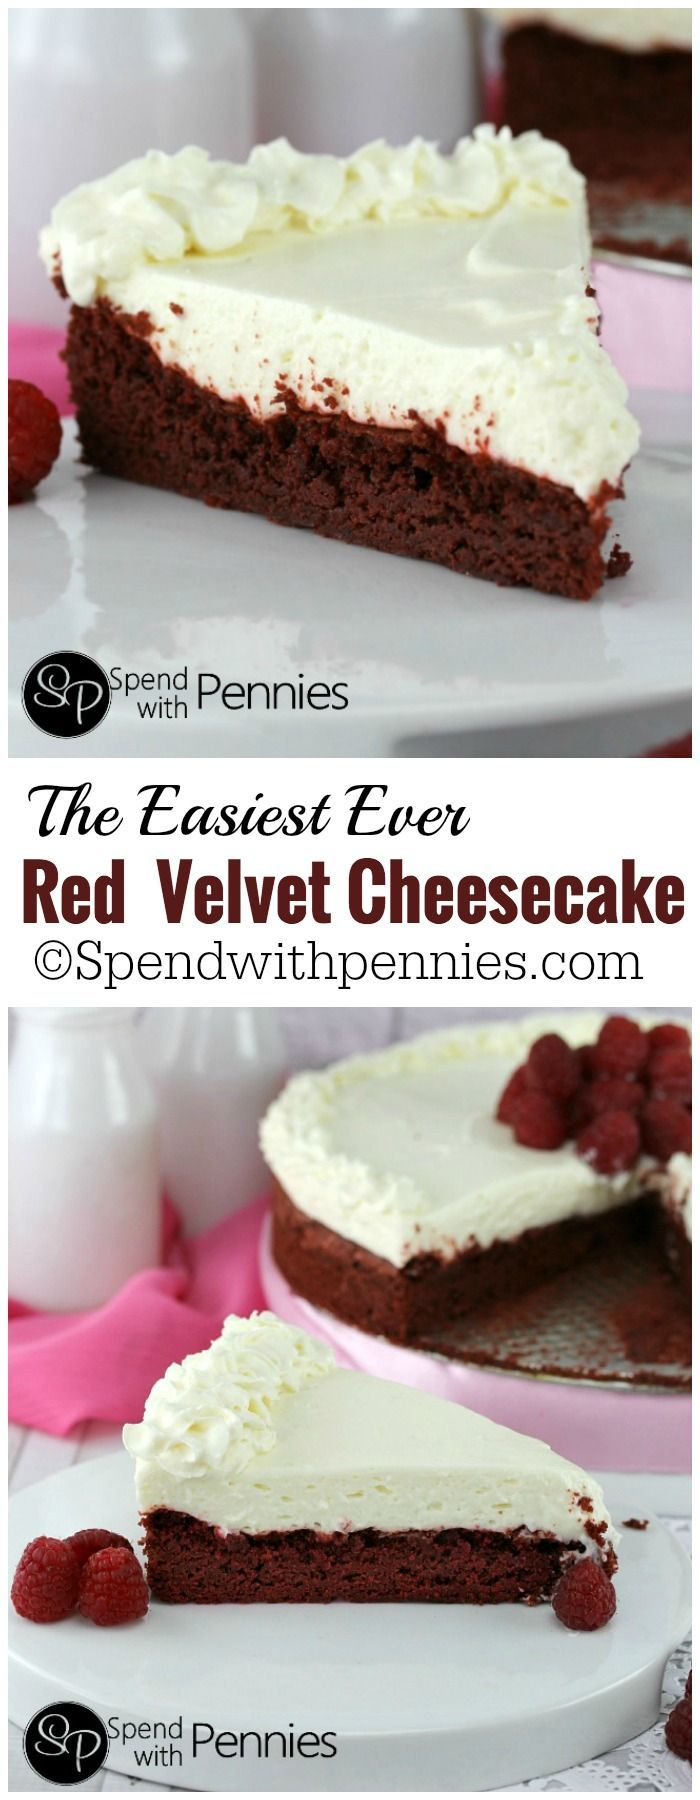 Best 20 red velvet cupcakes ideas on pinterest for Easy red velvet cake recipe uk